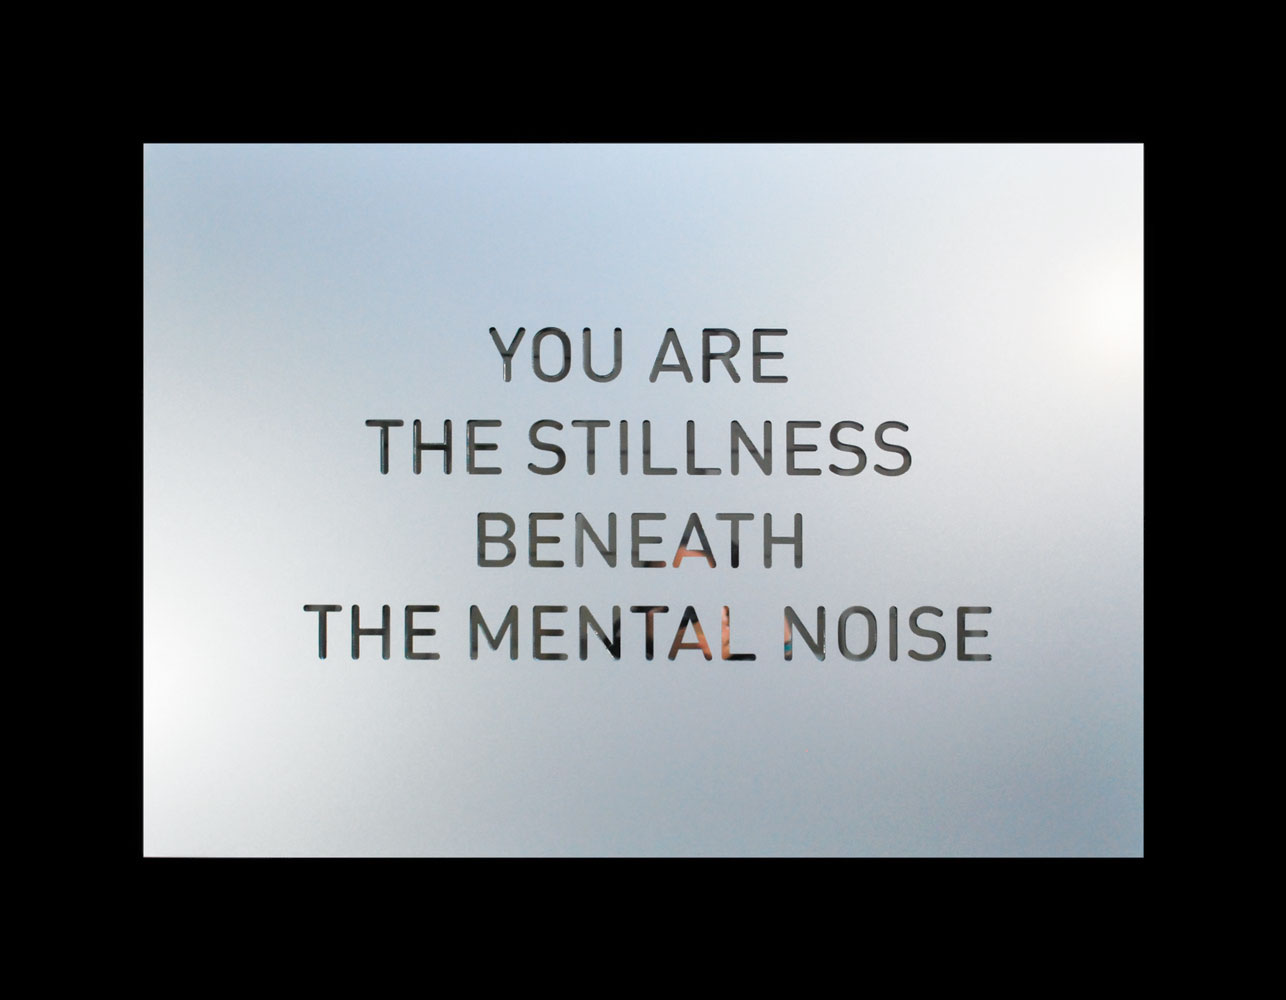 you-are-the-stillness-beneath-the-mental-noise